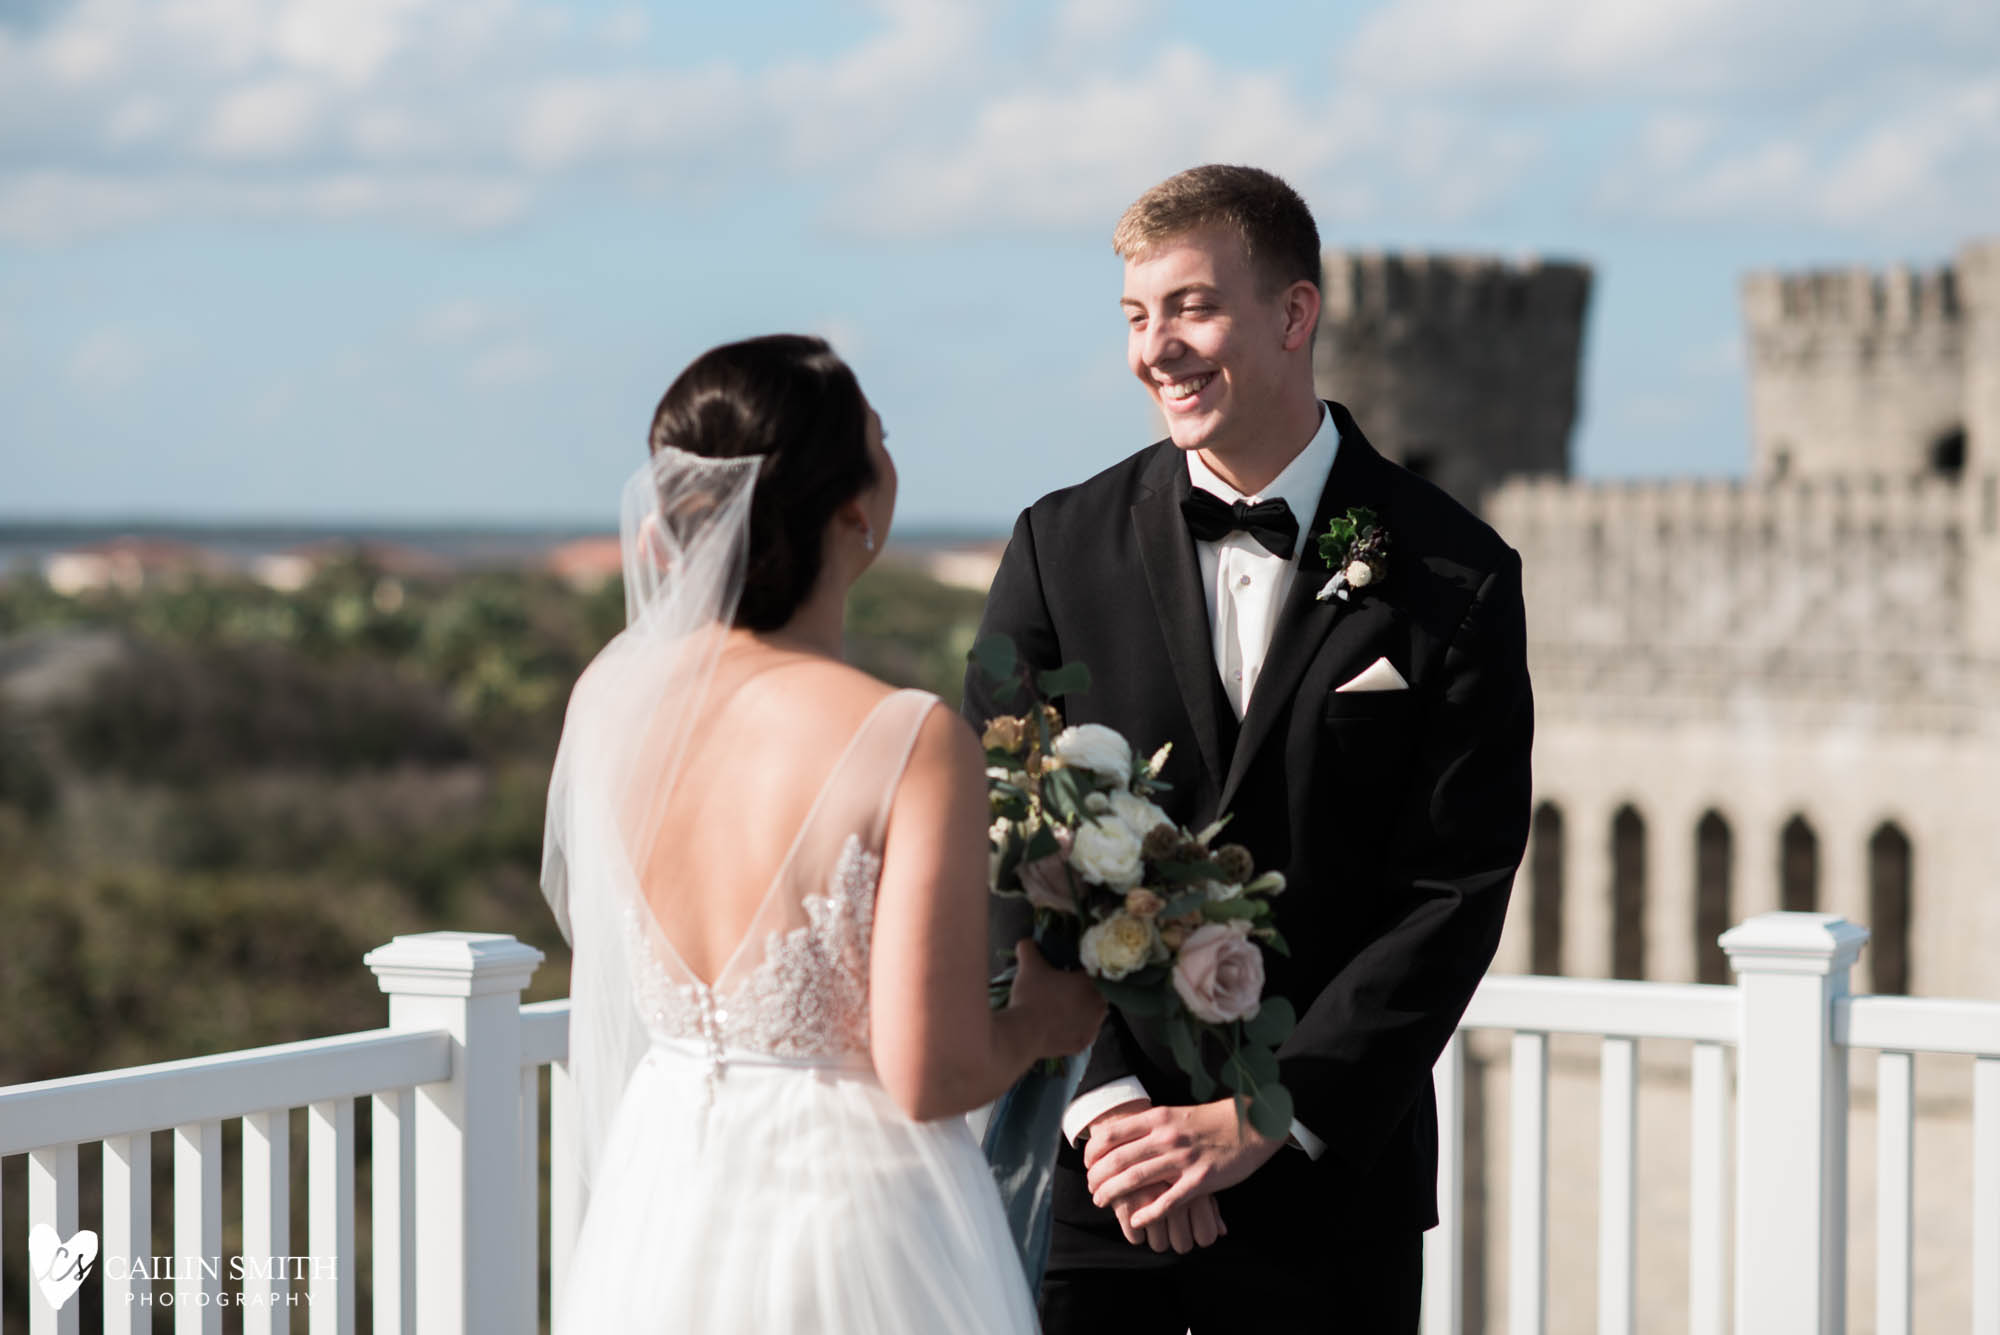 Christina_Matt_Castlegate_Vilano_Beach_Wedding_Photography_0031.jpg